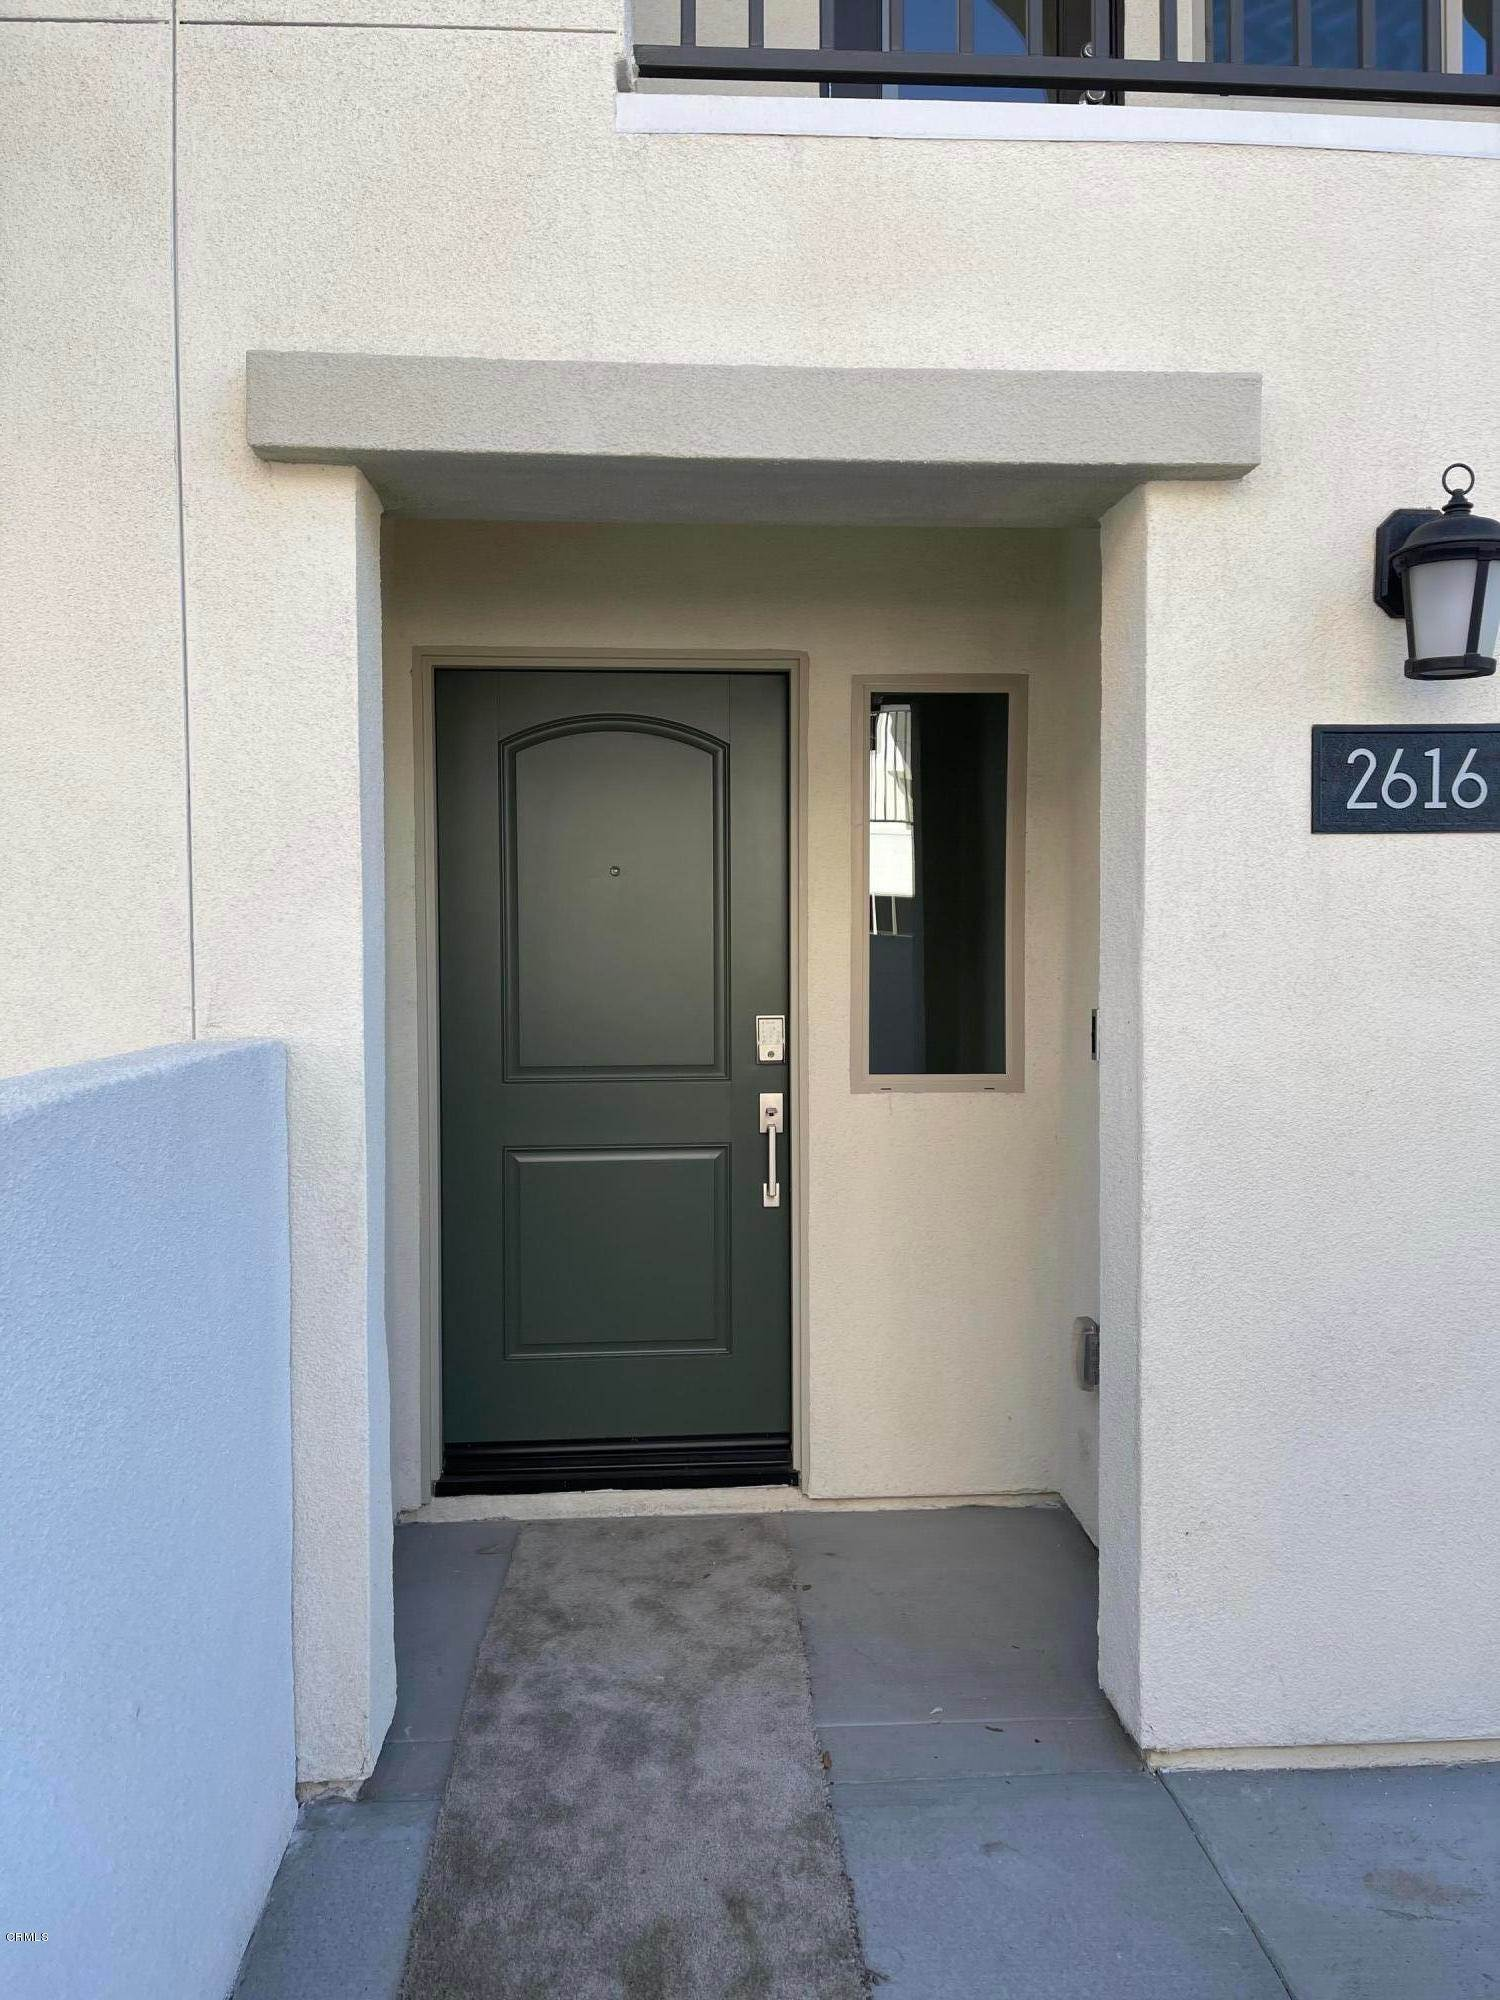 3. townhouses at 2616 Paisly Court Arcadia, California 91007 United States